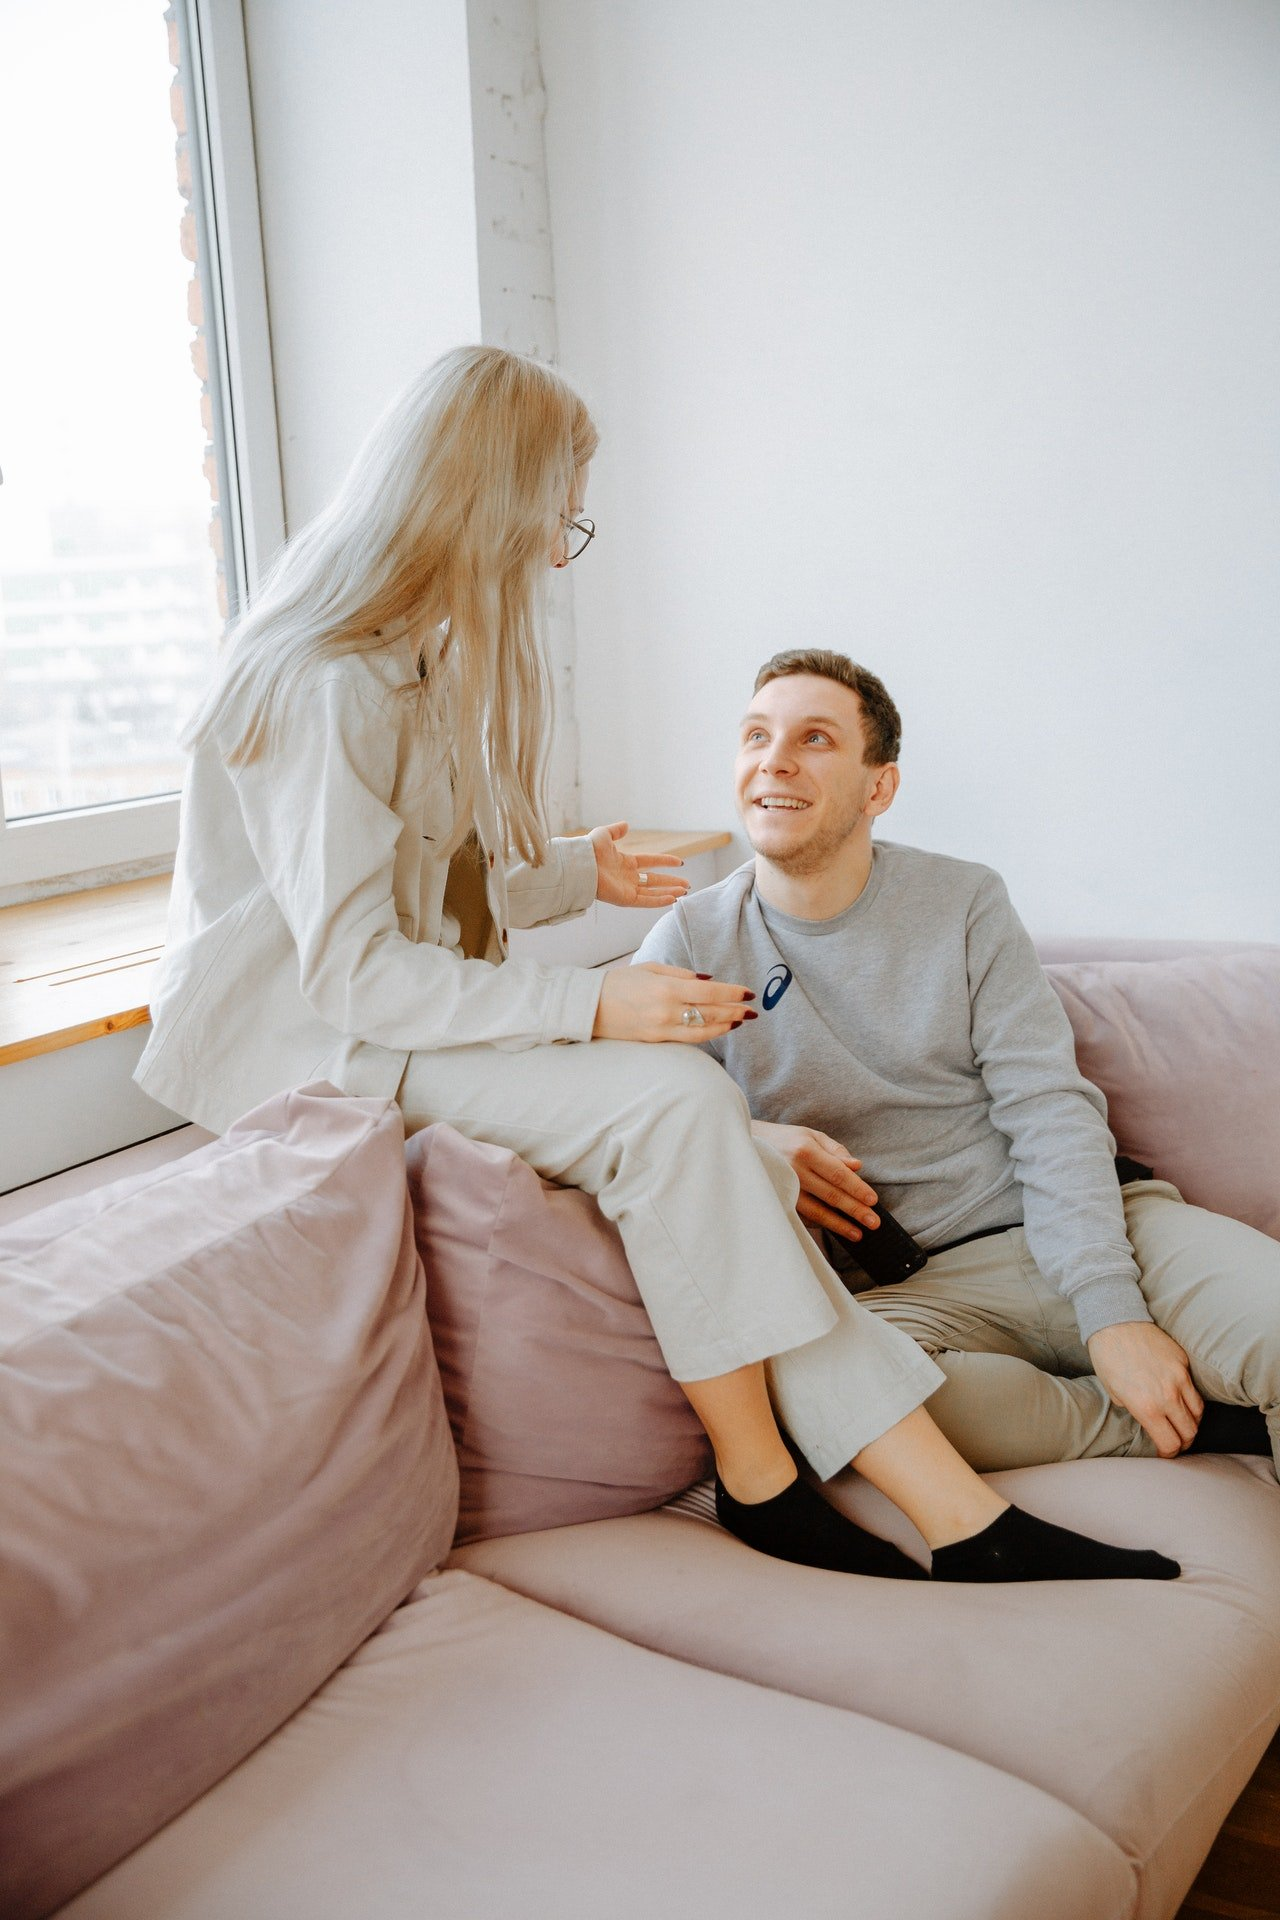 Wife asked if she could trust him | Photo: Pexels